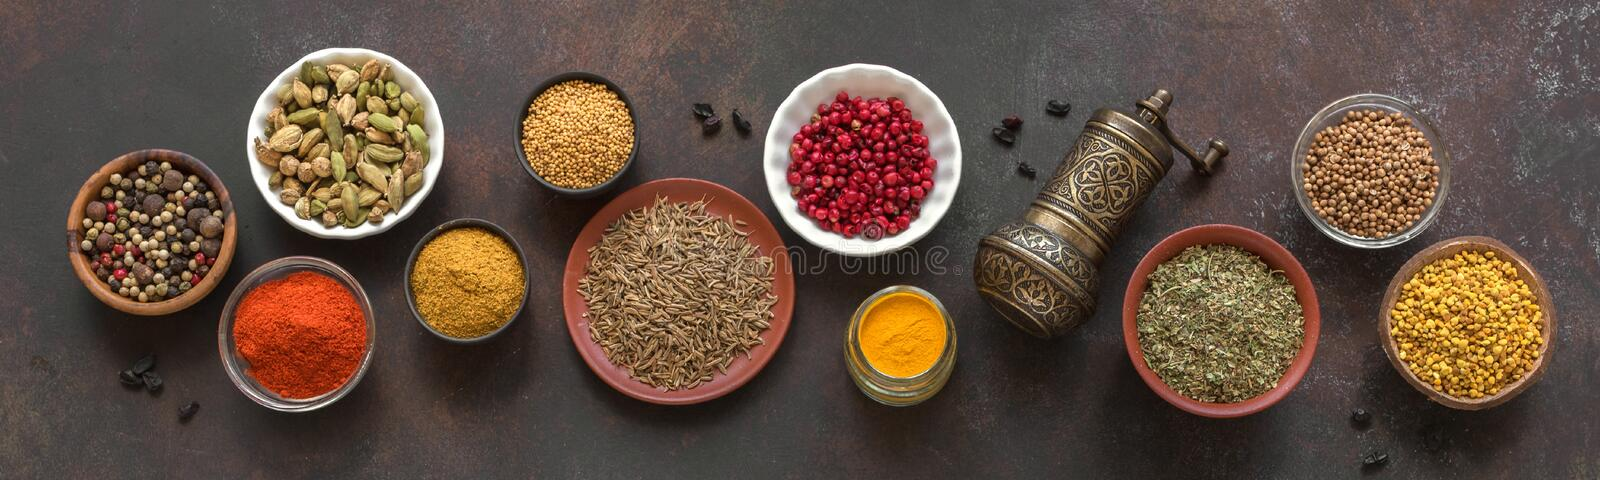 Spices Assortment. Various Spices on dark background. Assortment, set of spices and condiments with pepper mill, top view, banner. Cooking food concept royalty free stock images